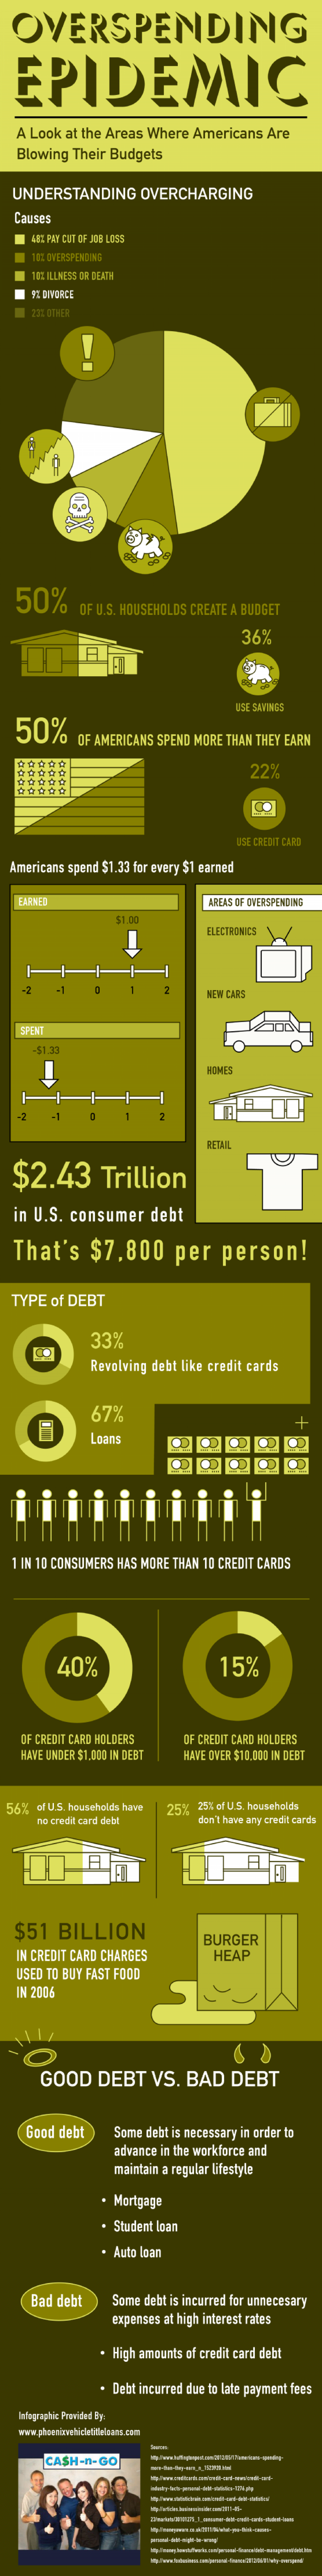 Overspending Epidemic Infographic